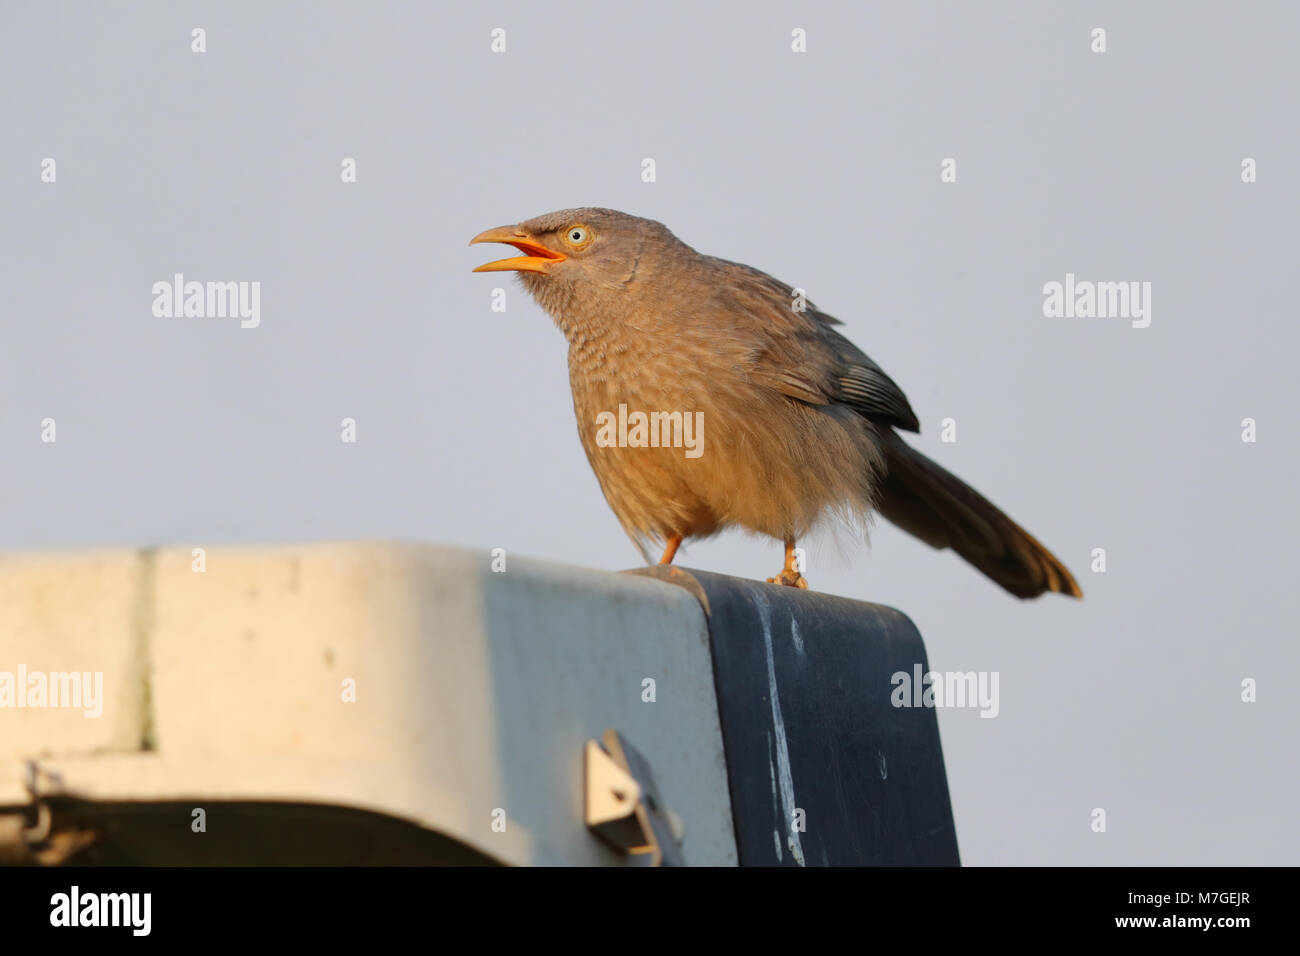 A portrait of an adult Jungle Babbler (Turdoides striata) perched in an urban park in Ahmedabad, Gujarat, India - Stock Image